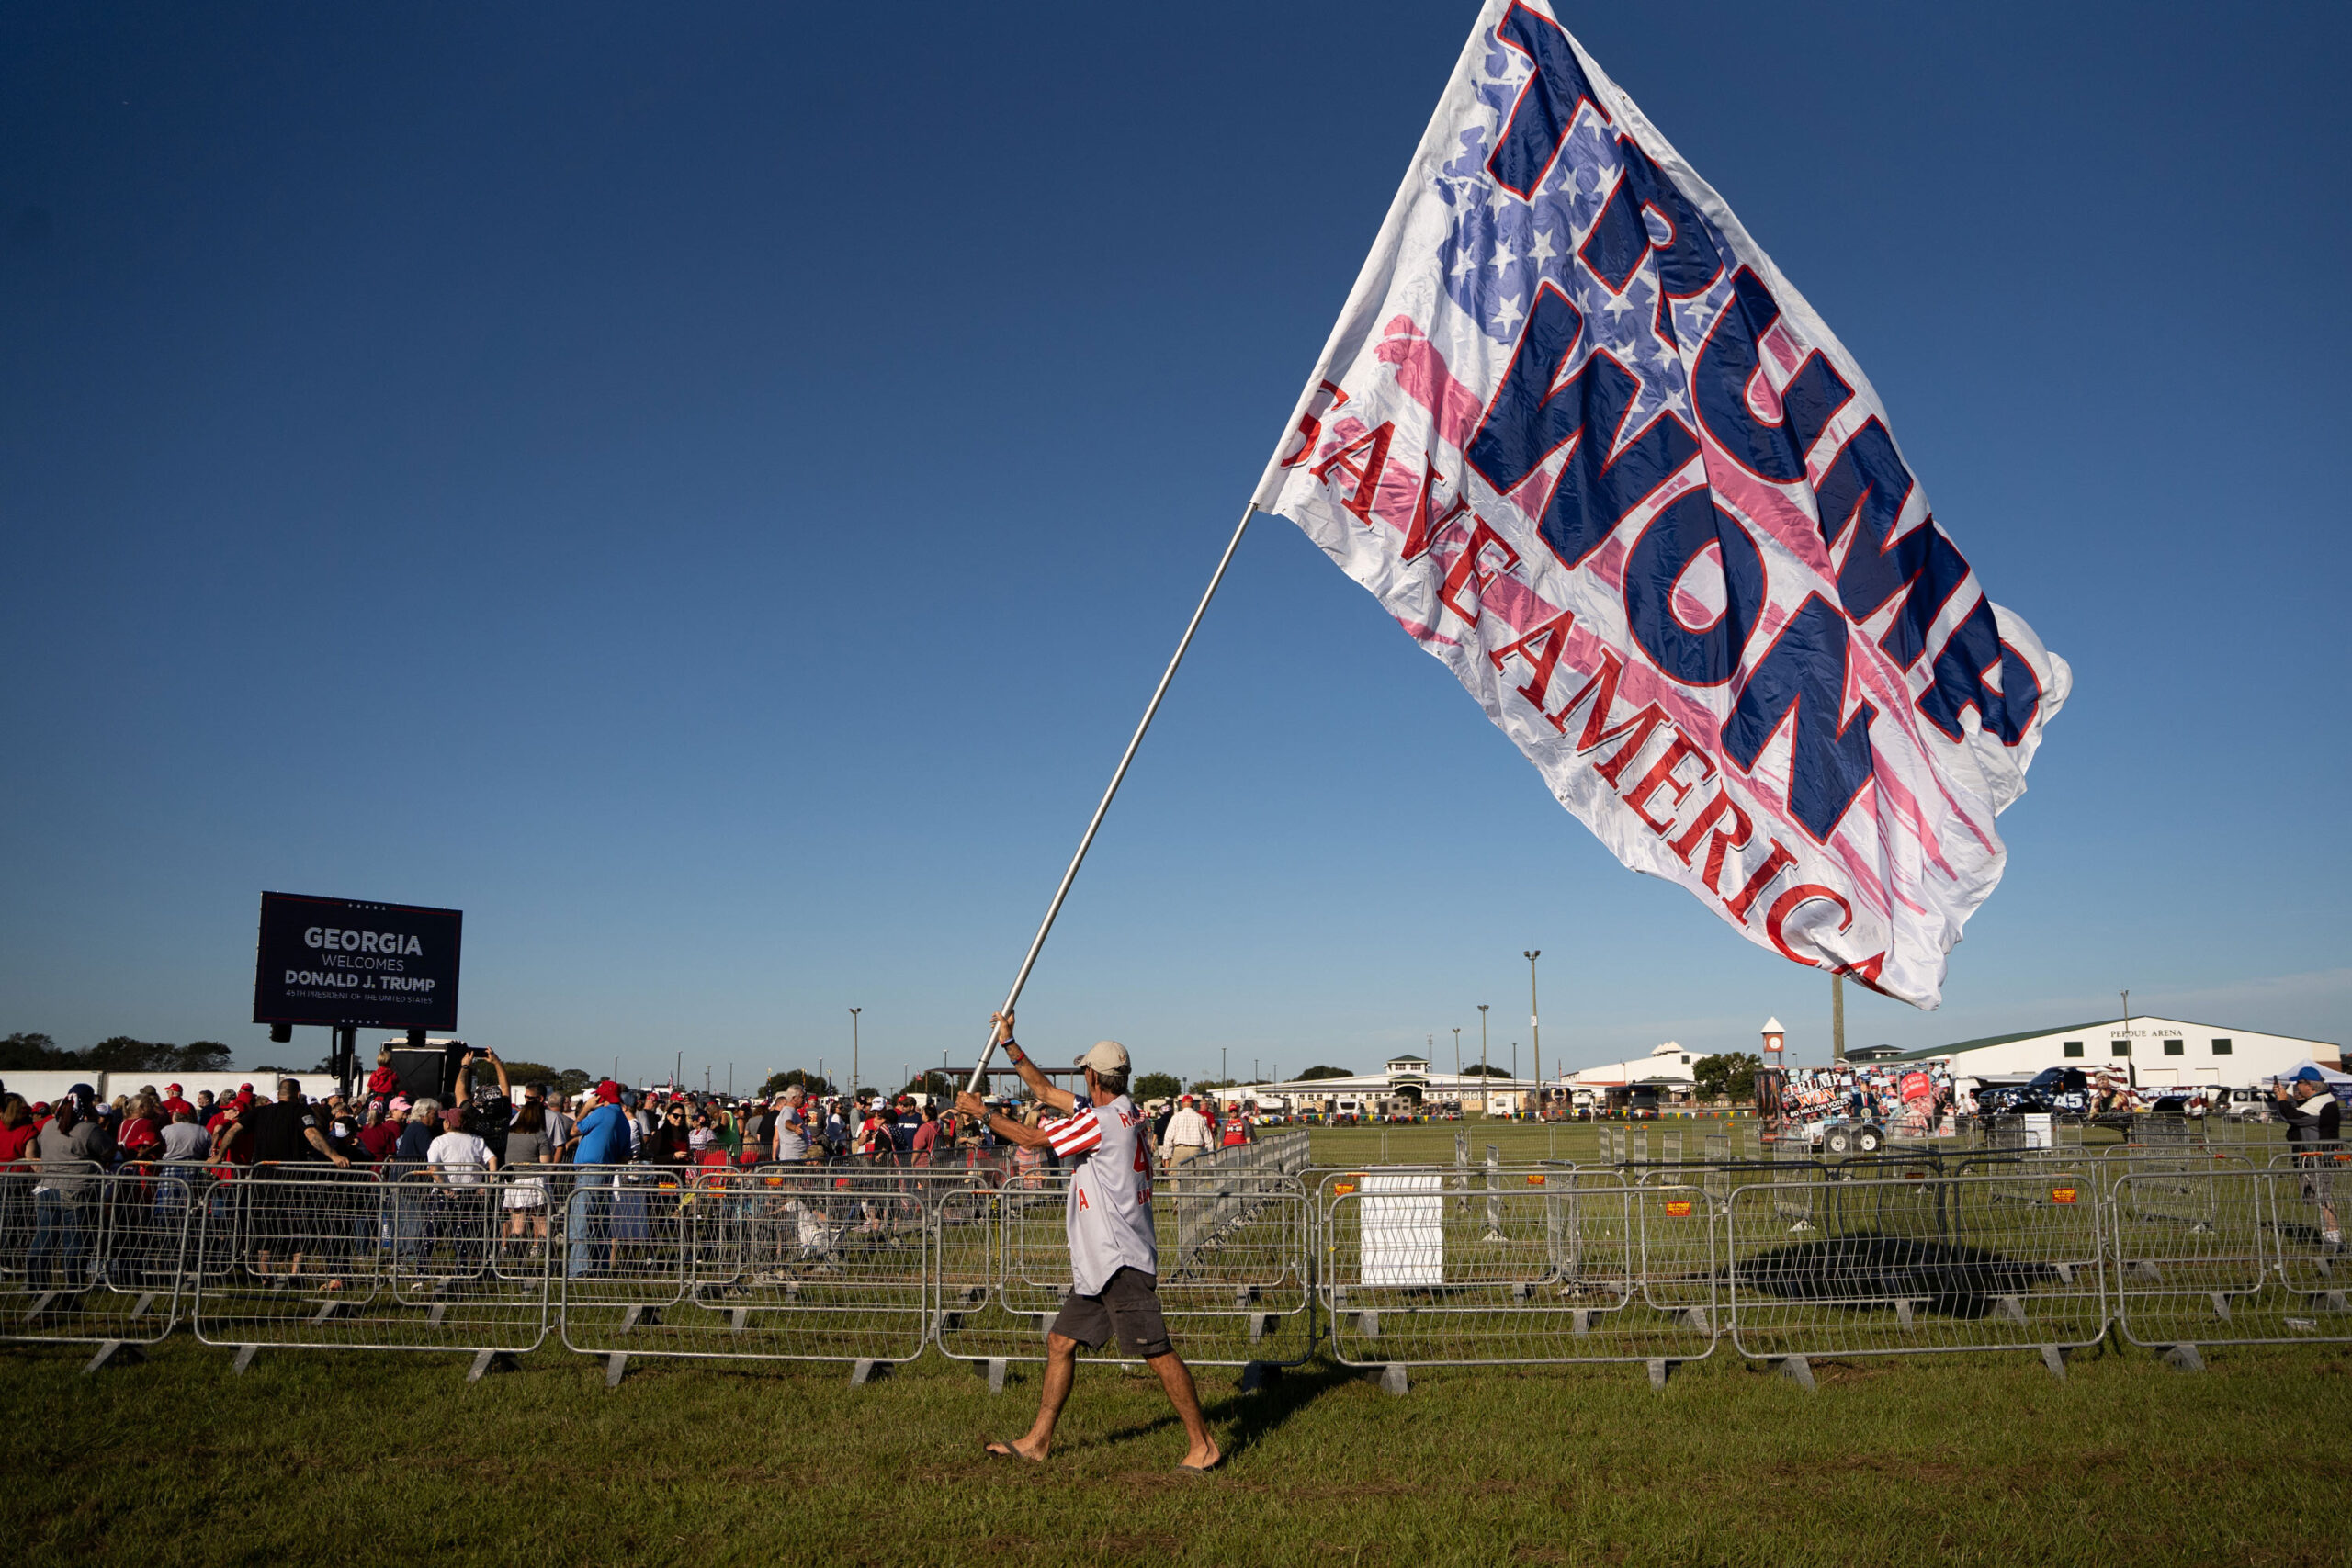 <i>Sean Rayford/Getty Images</i><br/>A man carries a flag that reads